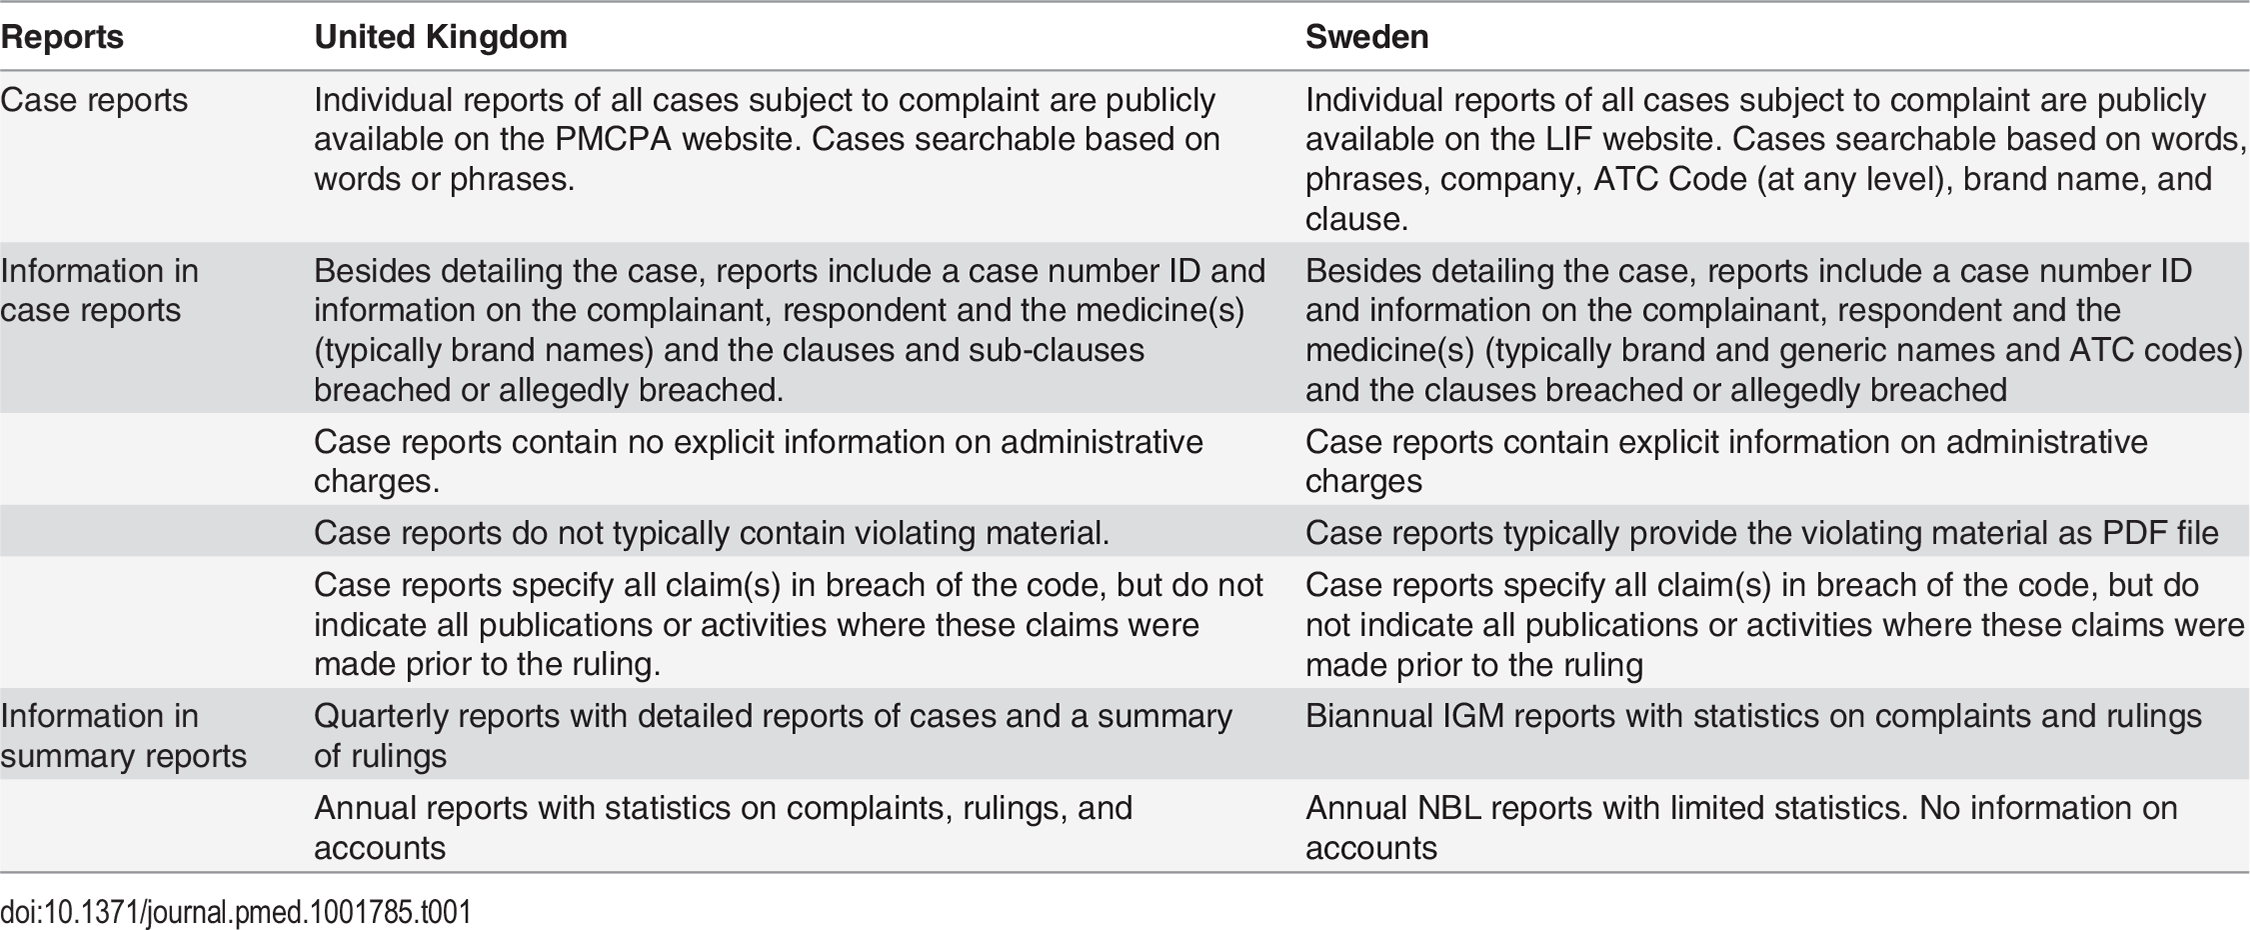 Information from self-regulatory bodies in the UK and Sweden.